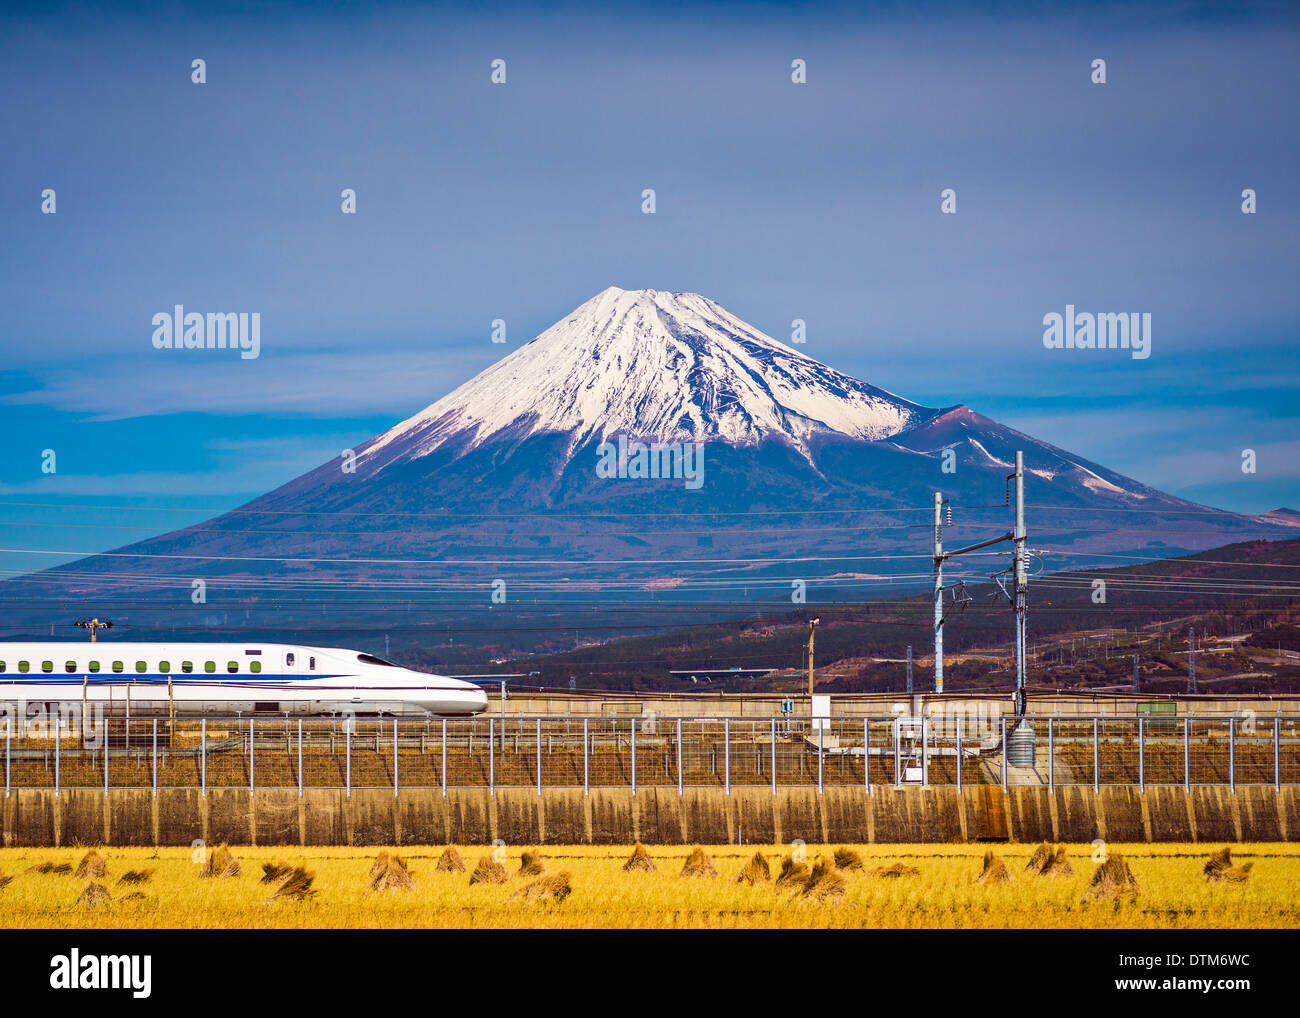 Mt. Fuji in Japan with a train passing below. - Stock Image